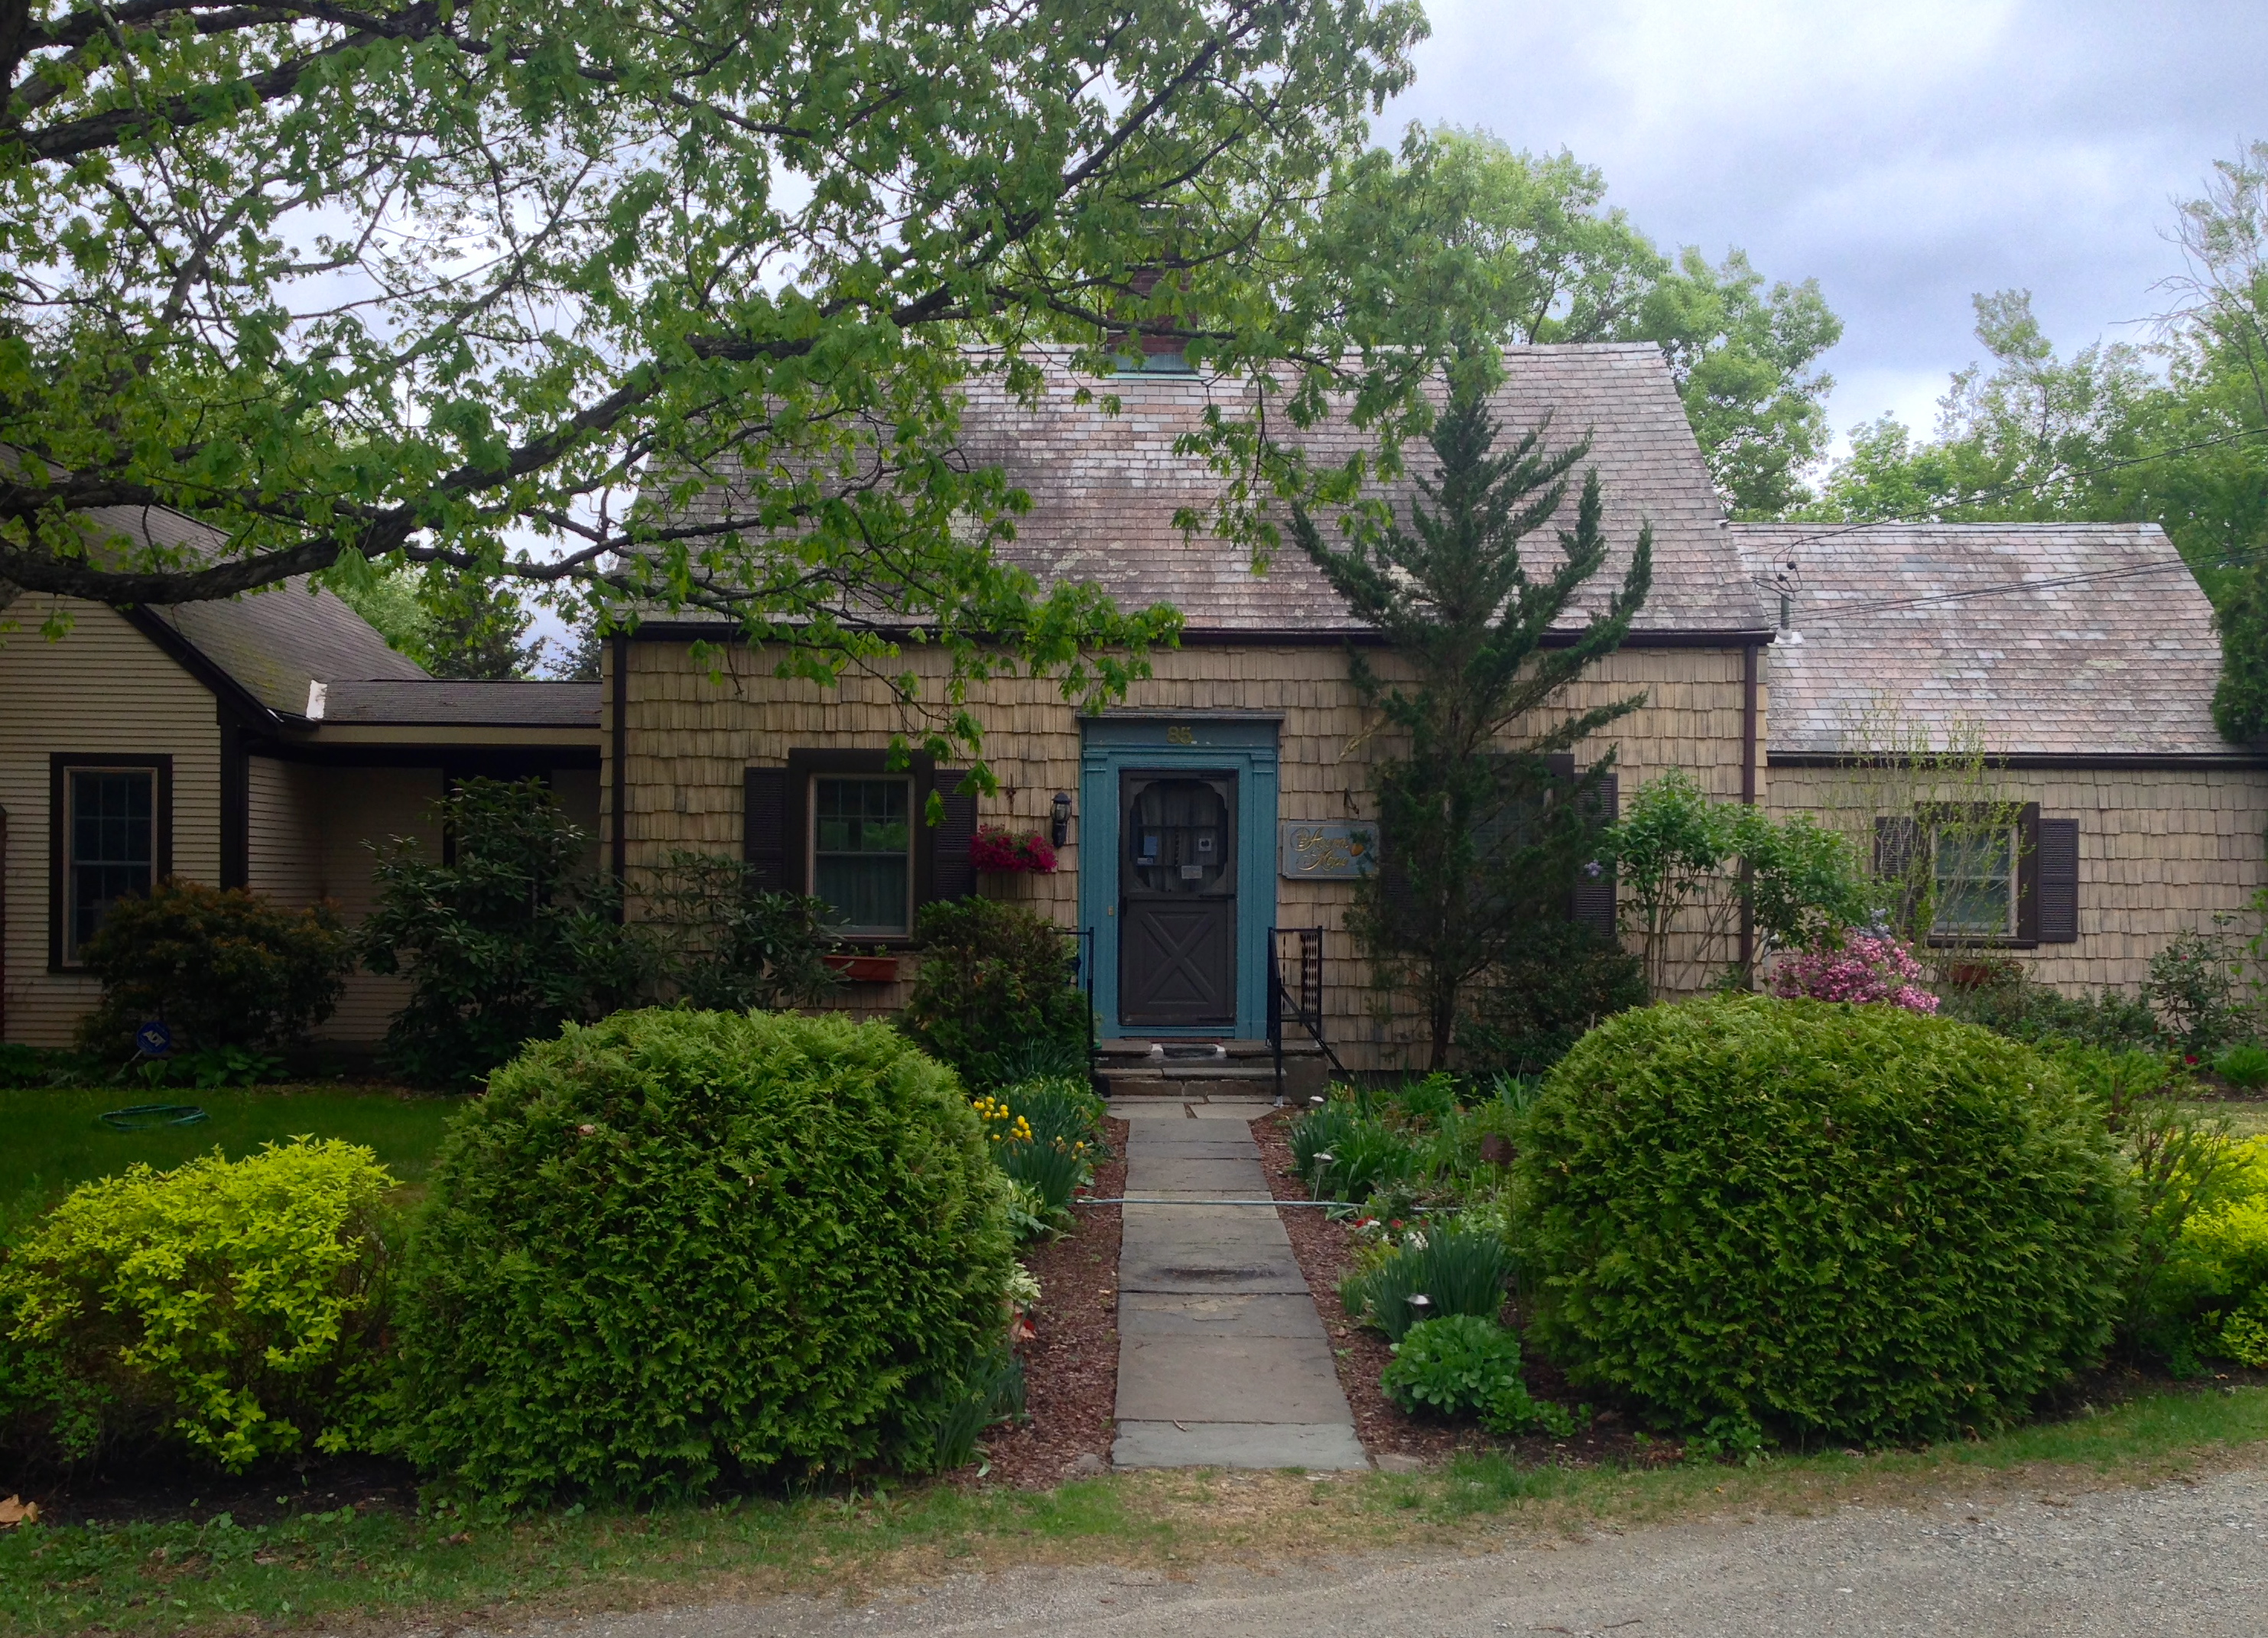 Single Family Home for Sale at THE ACORN'S HOPE - a turn-key Bed & Breakfast in the heart of the Berkshires 85 Alford Rd Great Barrington, Massachusetts 01230 United States